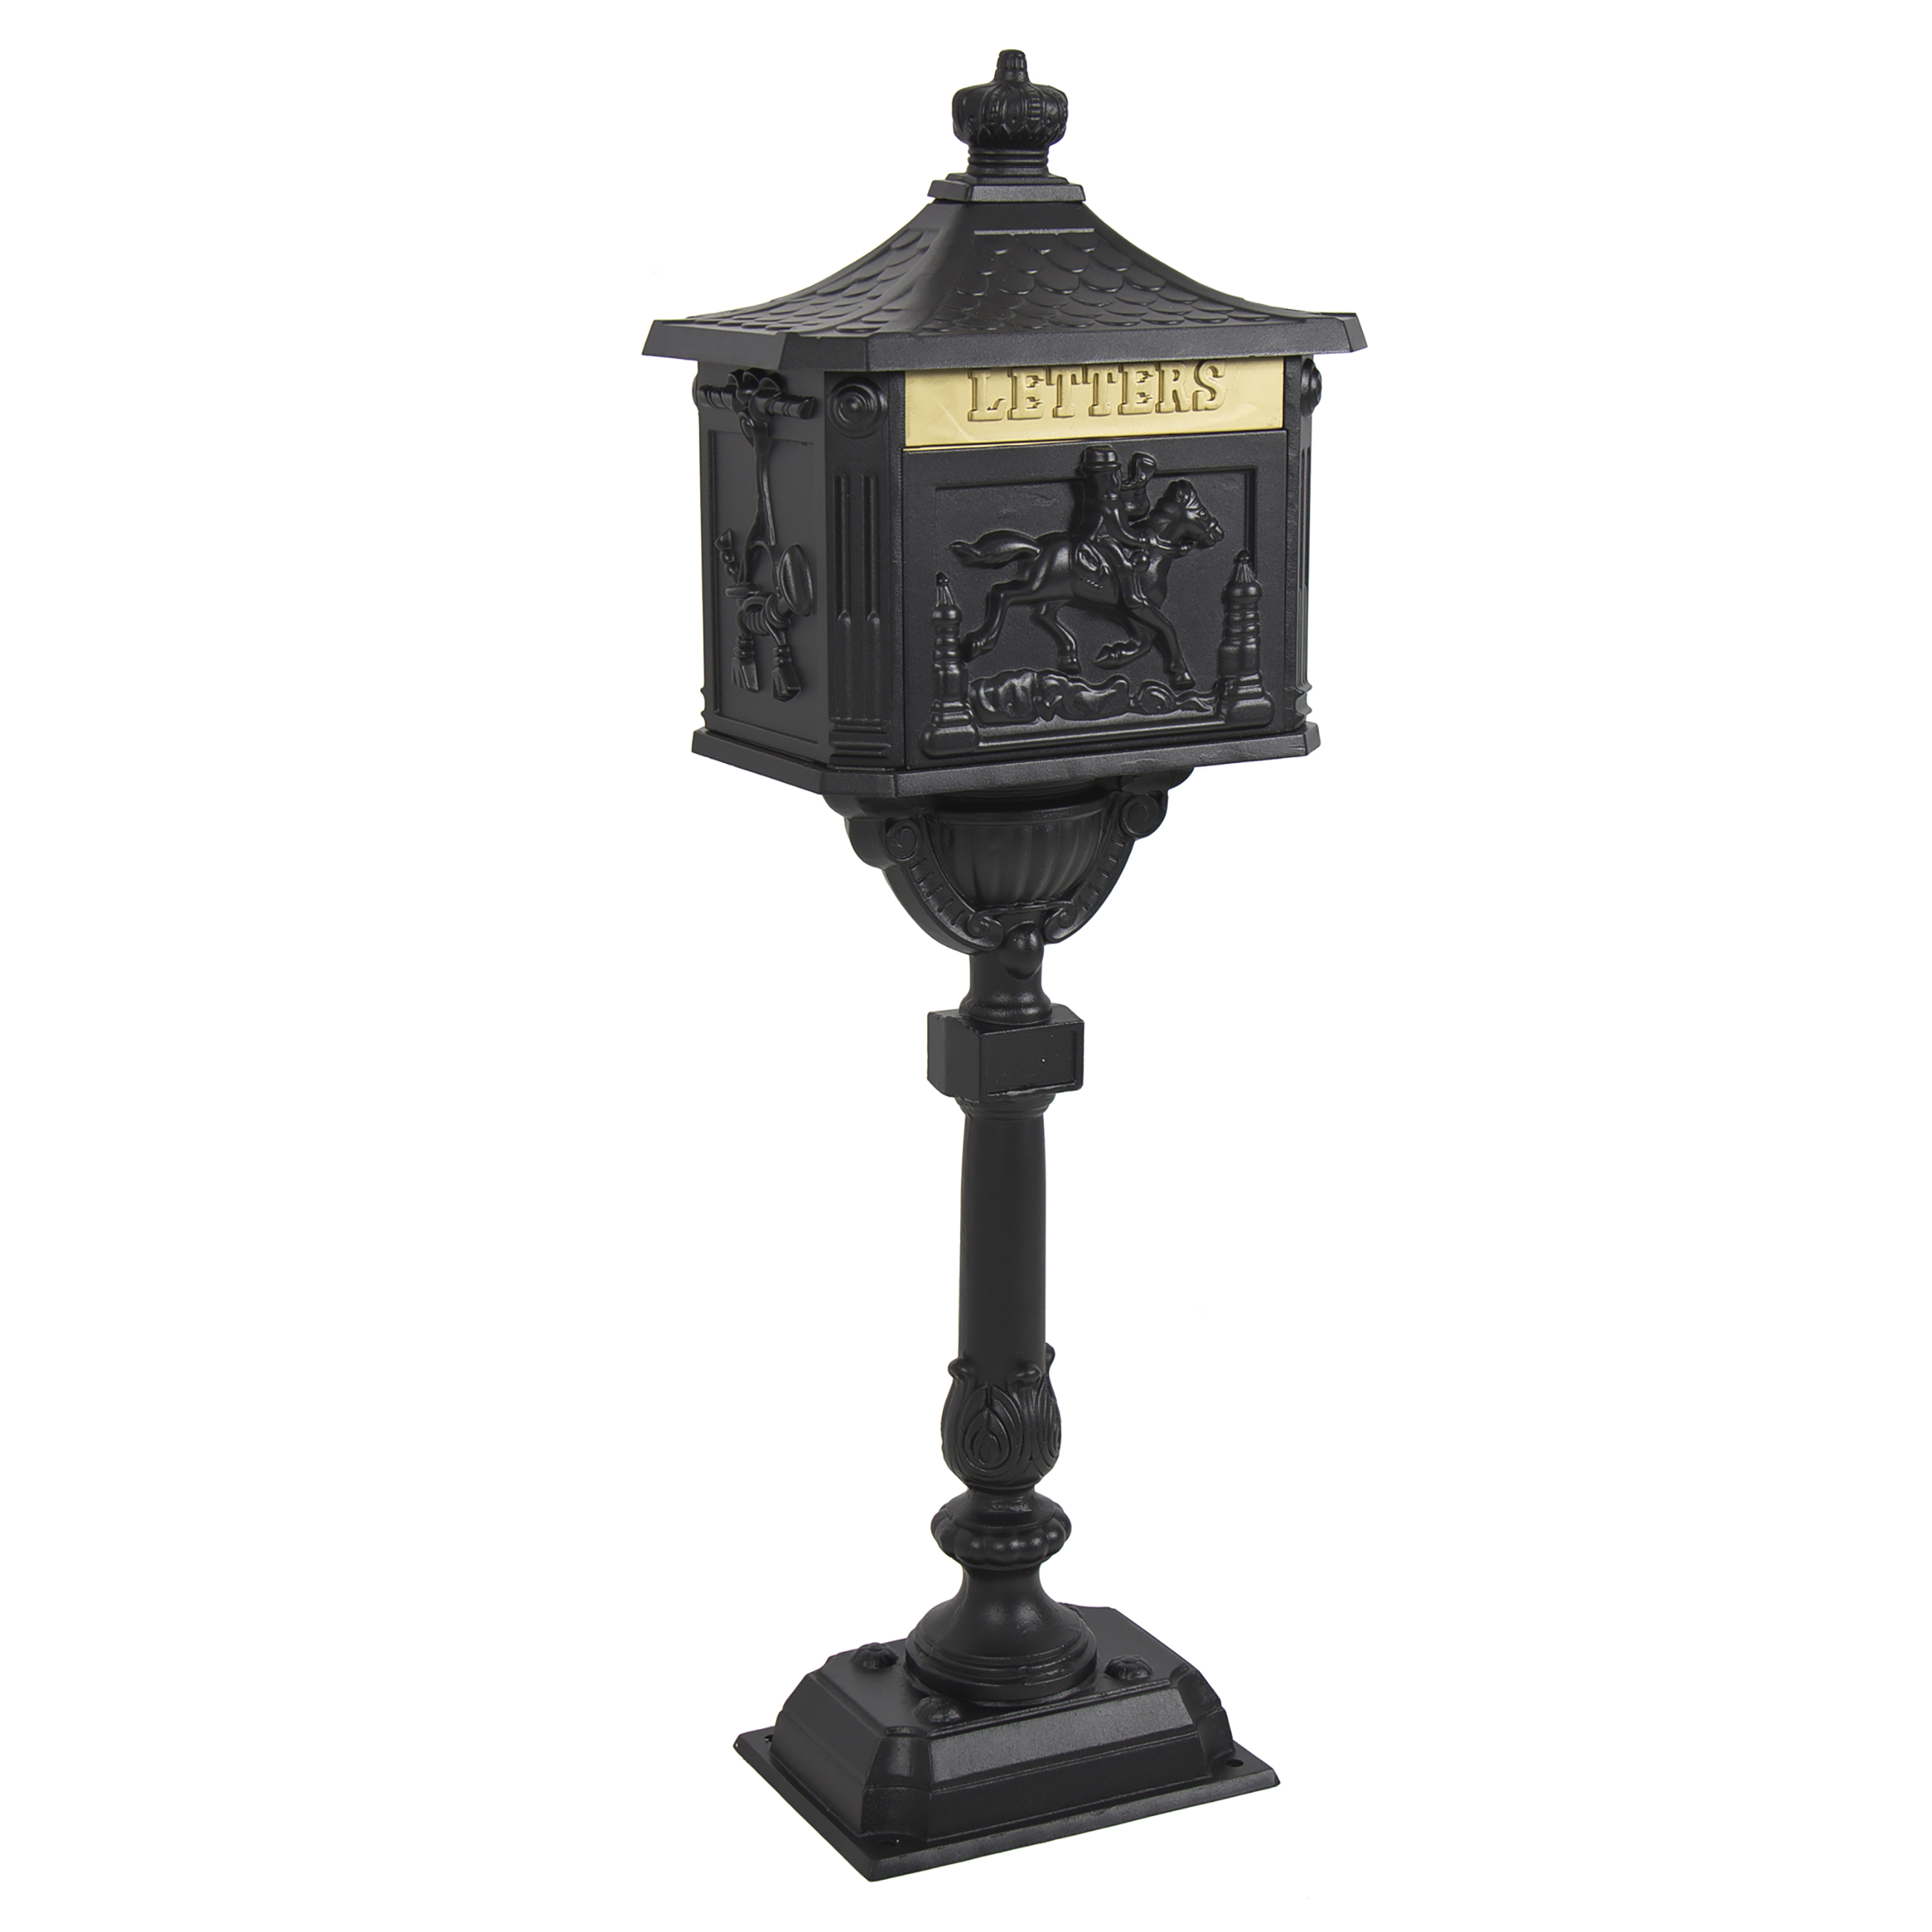 Mailbox Cast Aluminum Black Mail Box Postal Box Security Heavy Duty New by